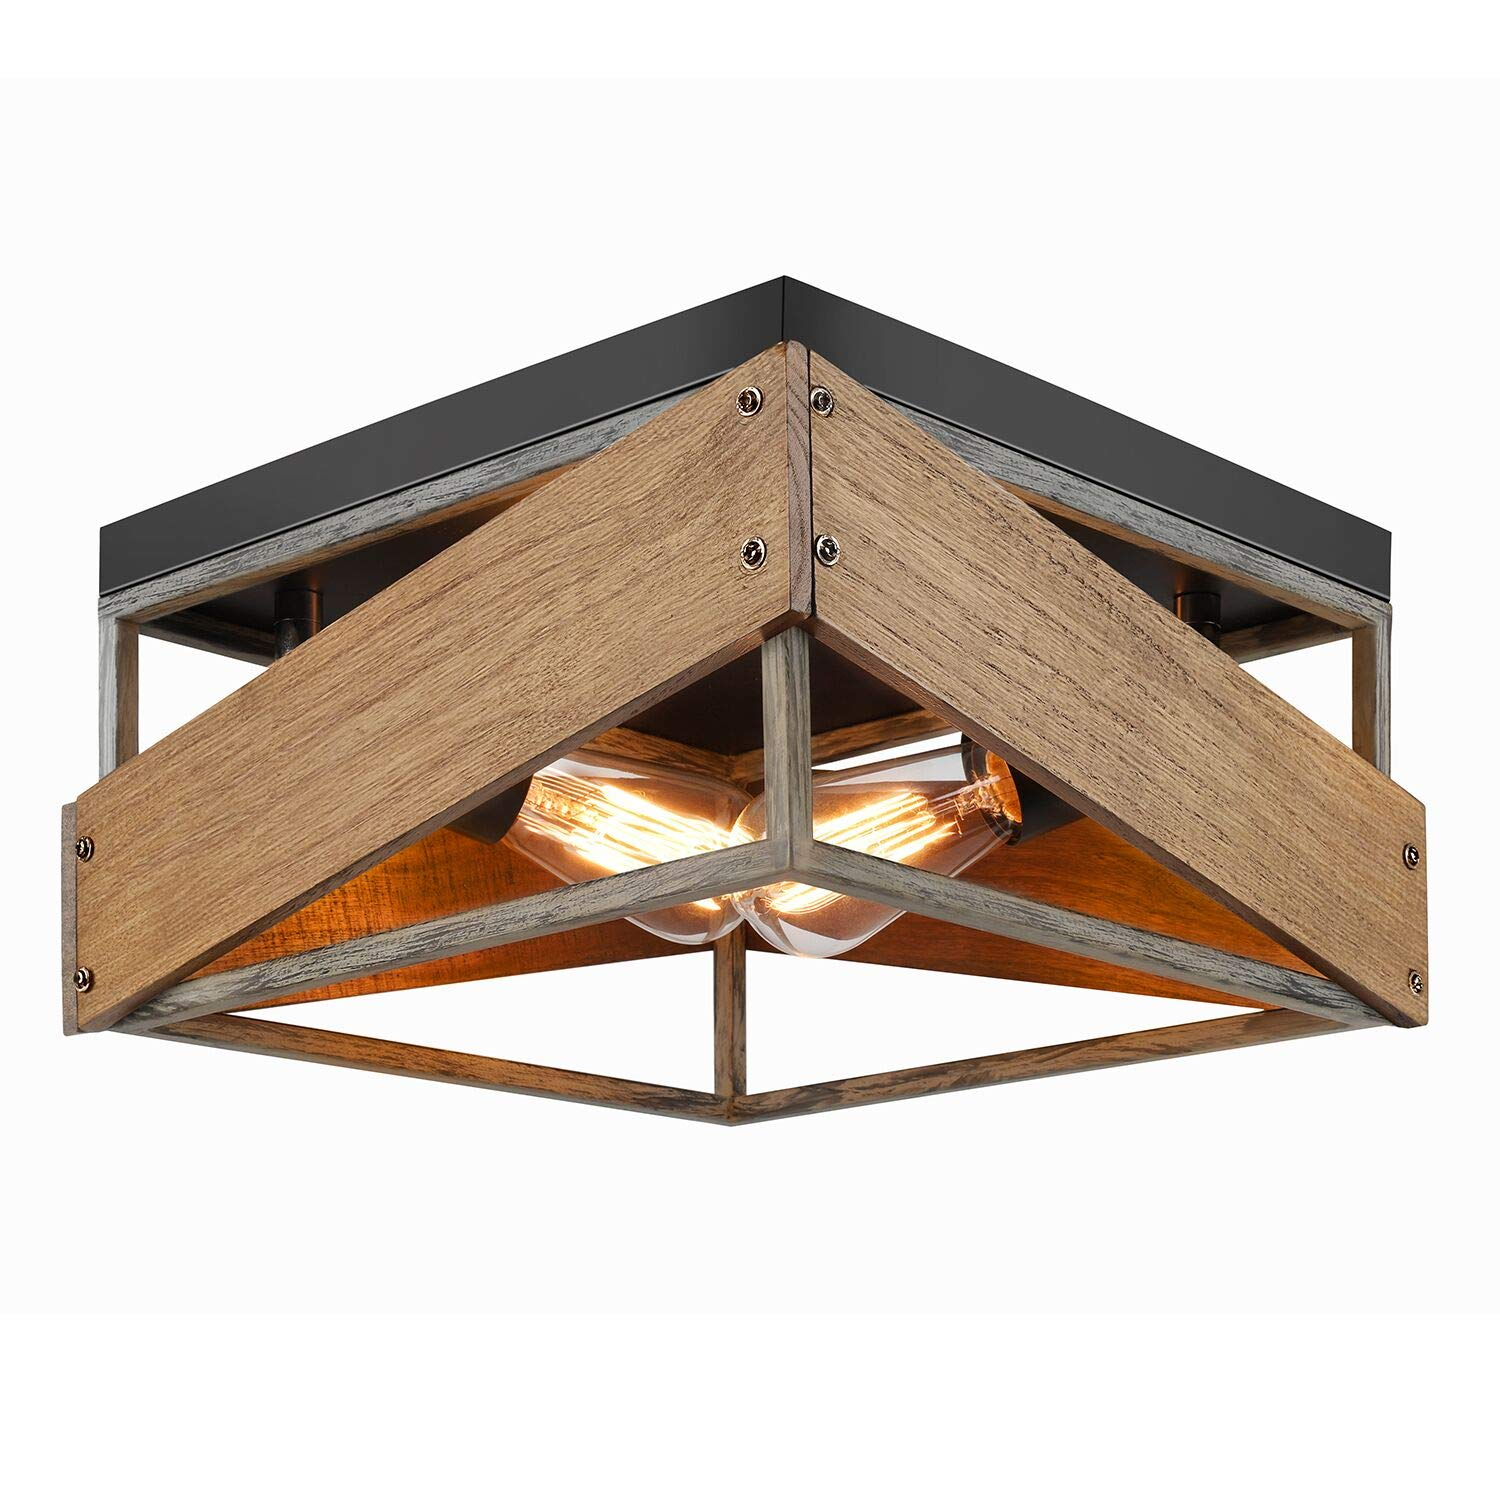 Rustic Flush Mount Ceiling Light Fixture 2-Light Metal and Solid Wood Square